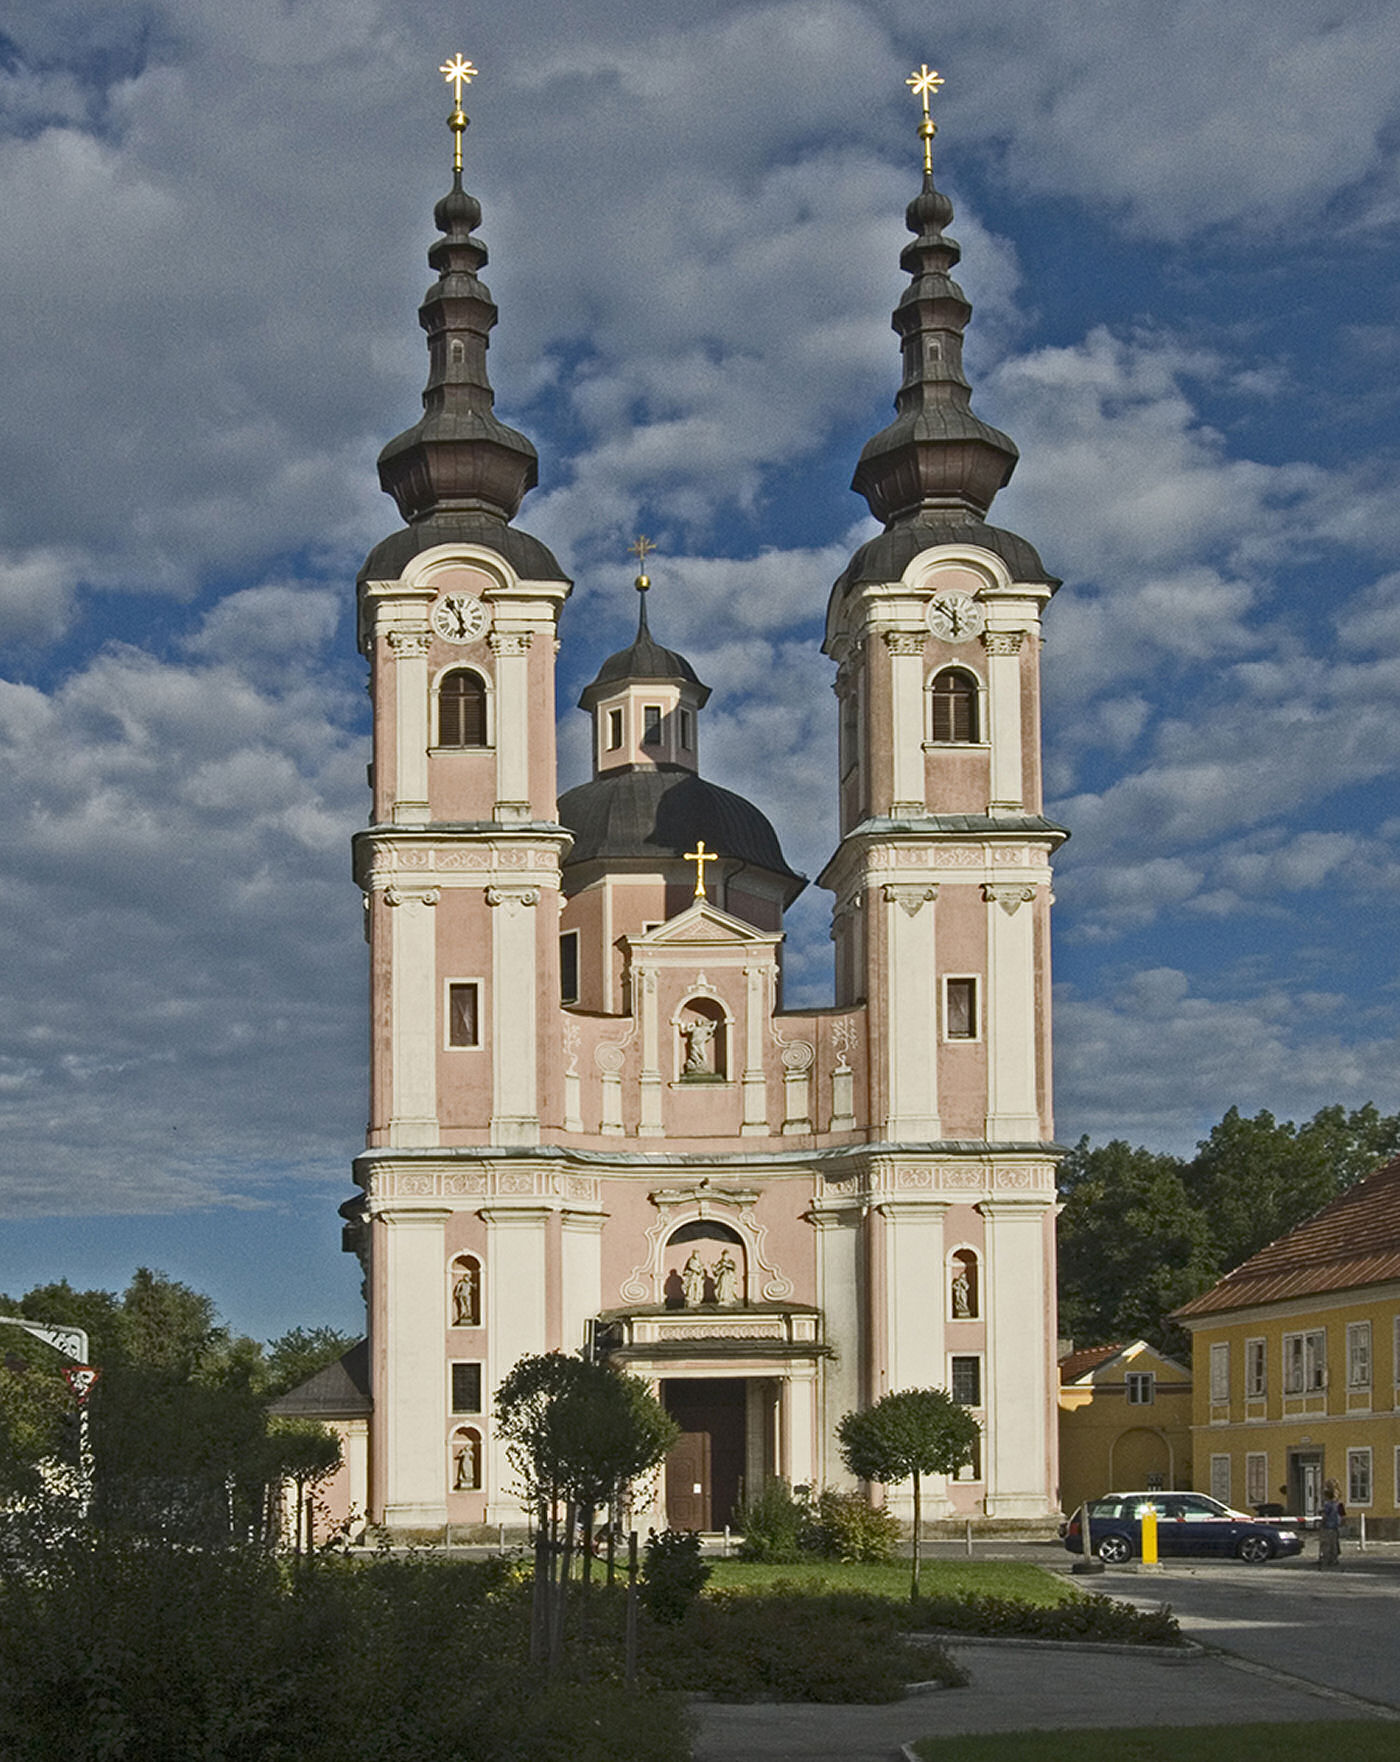 The Heilige Kreuz church is among the most beautiful sacred Baroque-style buildings in Austria